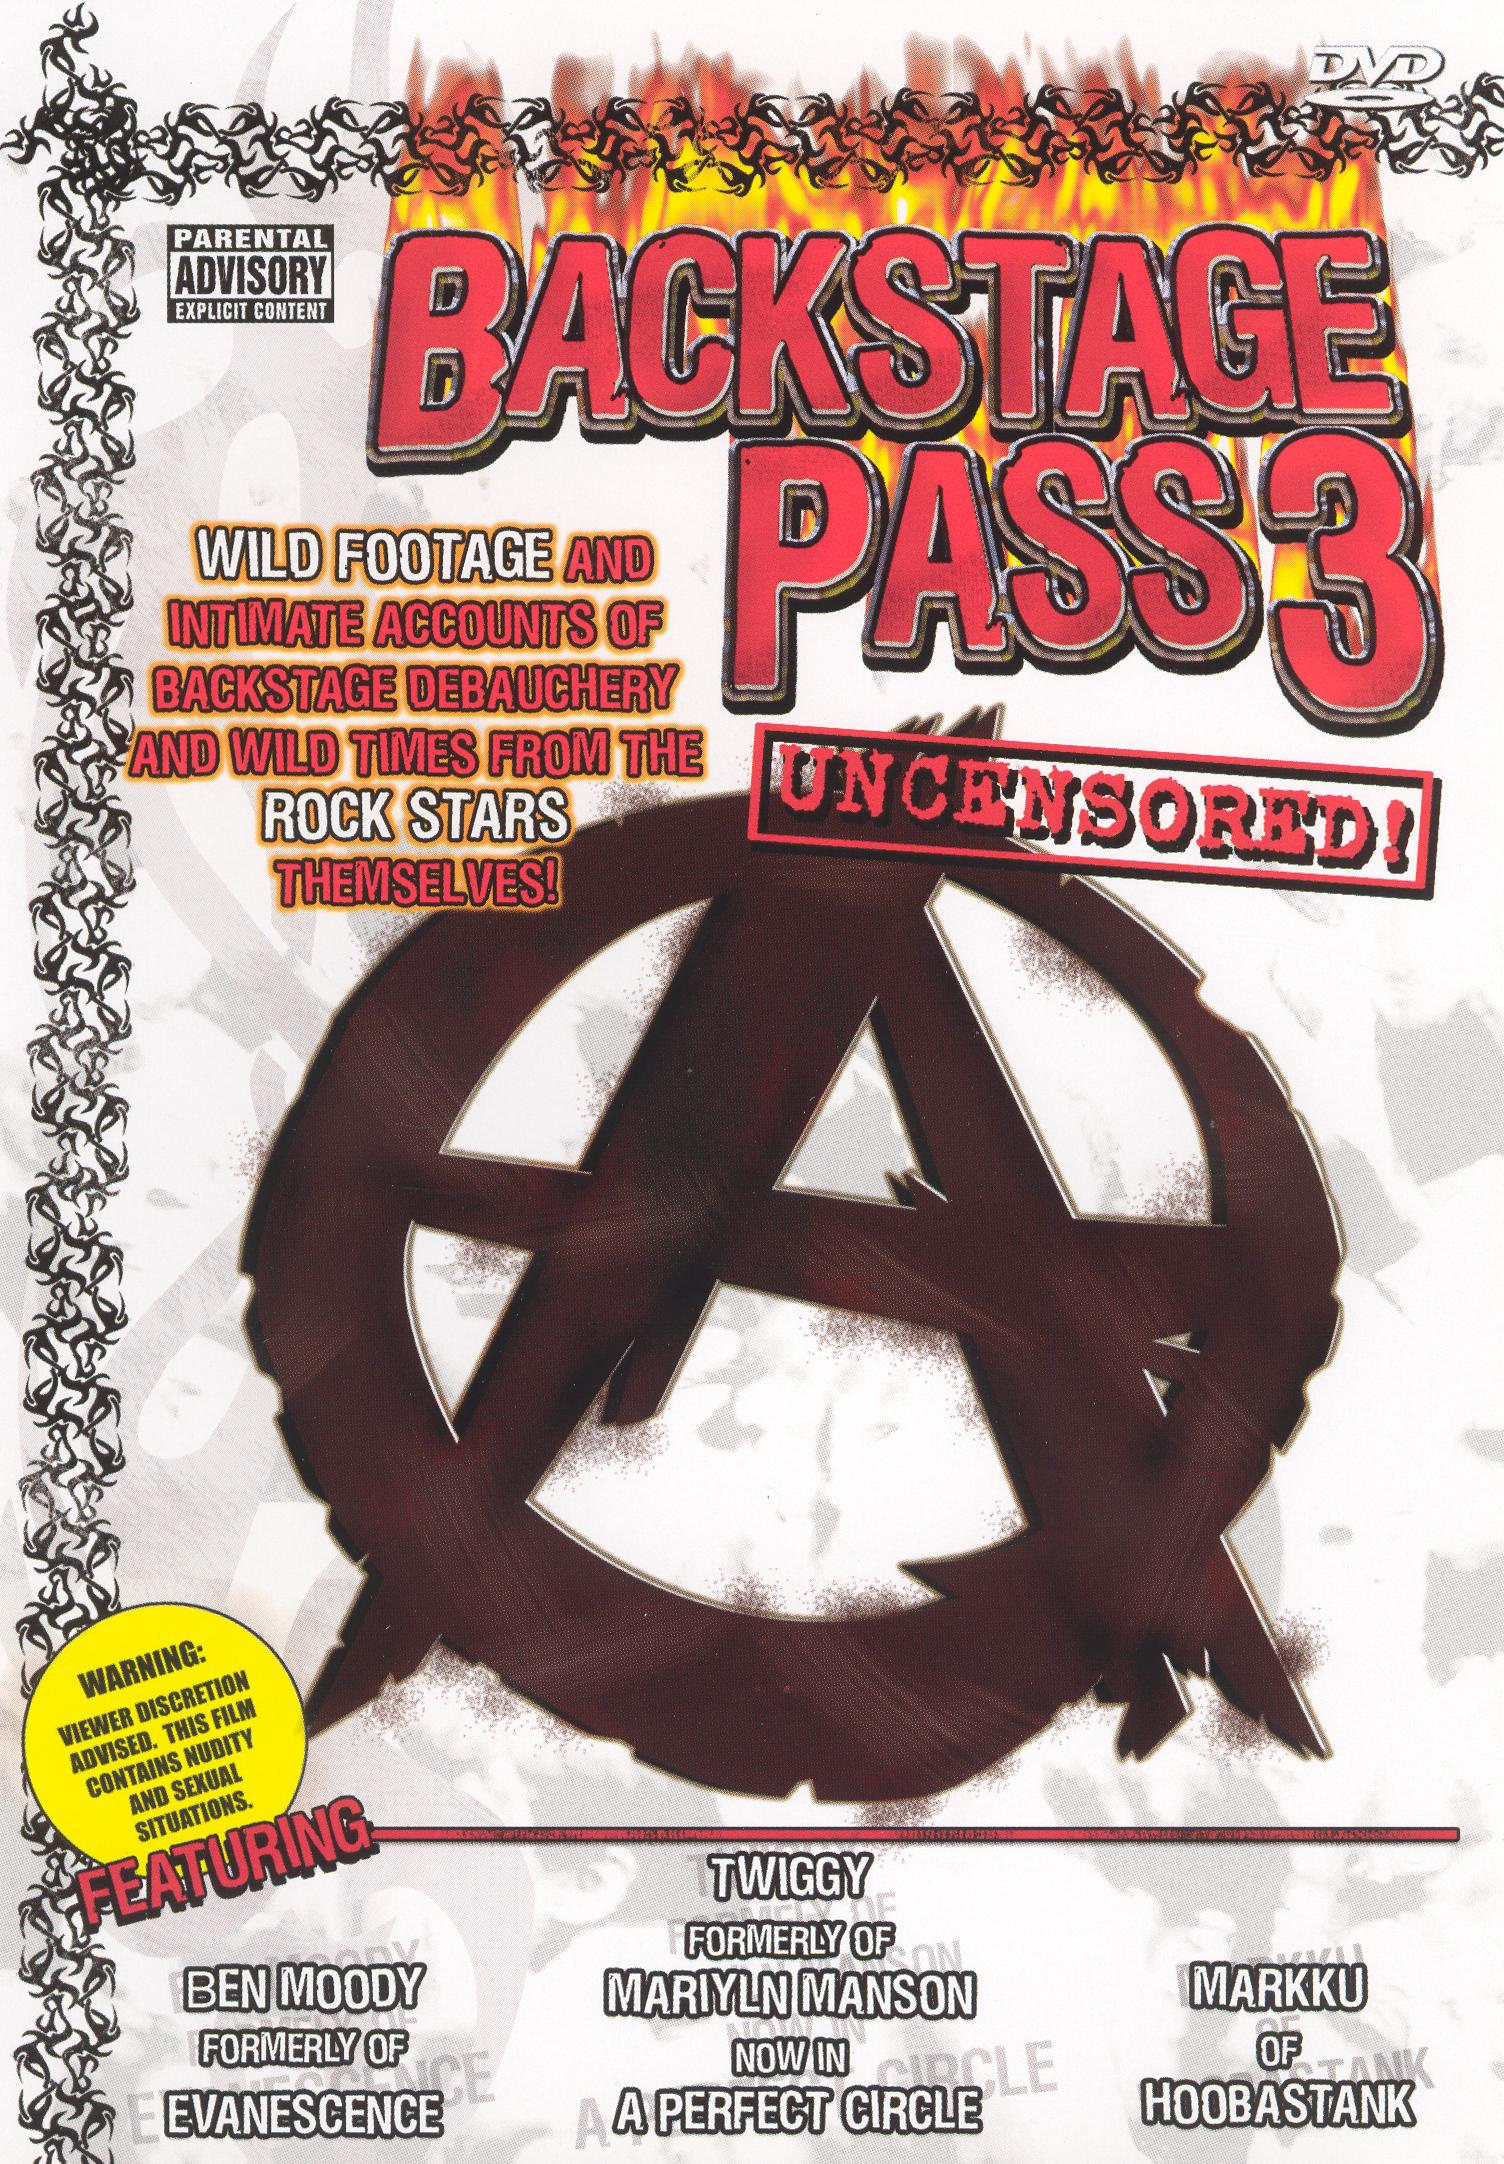 Backstage Pass 3: Uncensored!